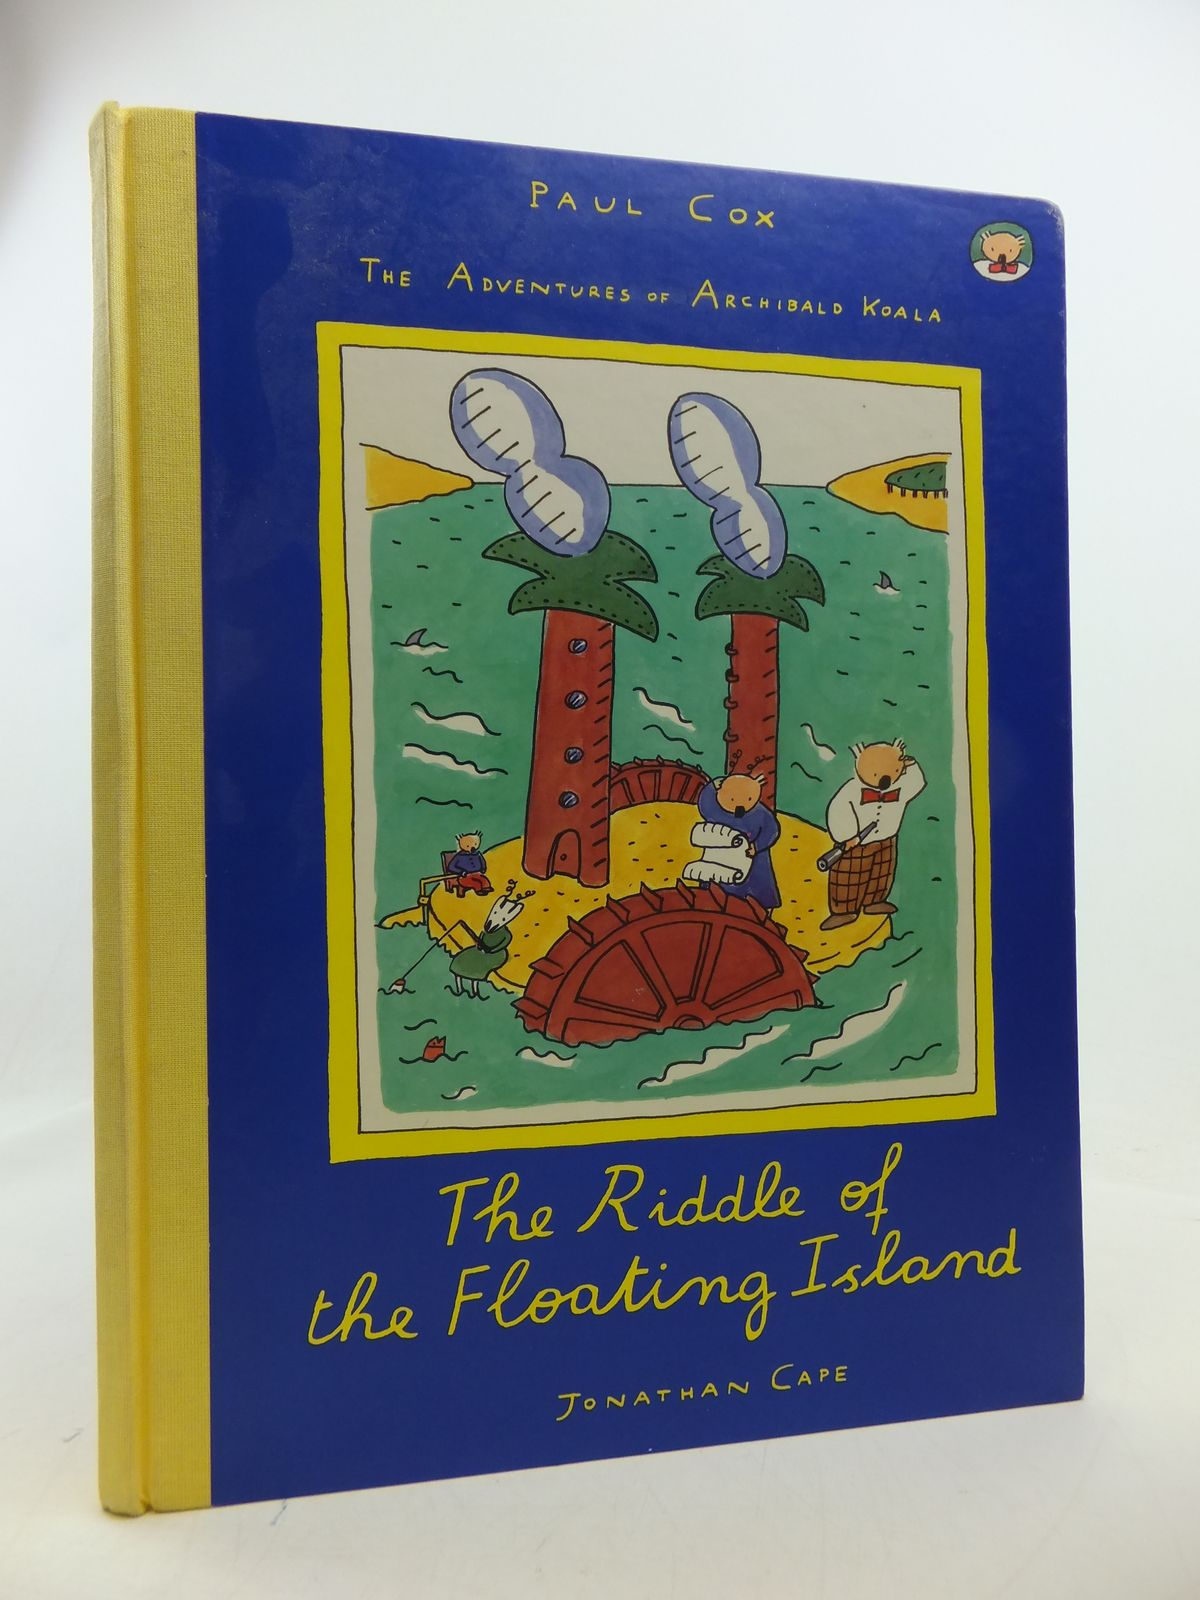 Photo of THE ADVENTURES OF ARCHIBALD KOALA - THE RIDDLE OF THE FLOATING ISLAND written by Cox, Paul illustrated by Cox, Paul published by Jonathan Cape (STOCK CODE: 1207823)  for sale by Stella & Rose's Books